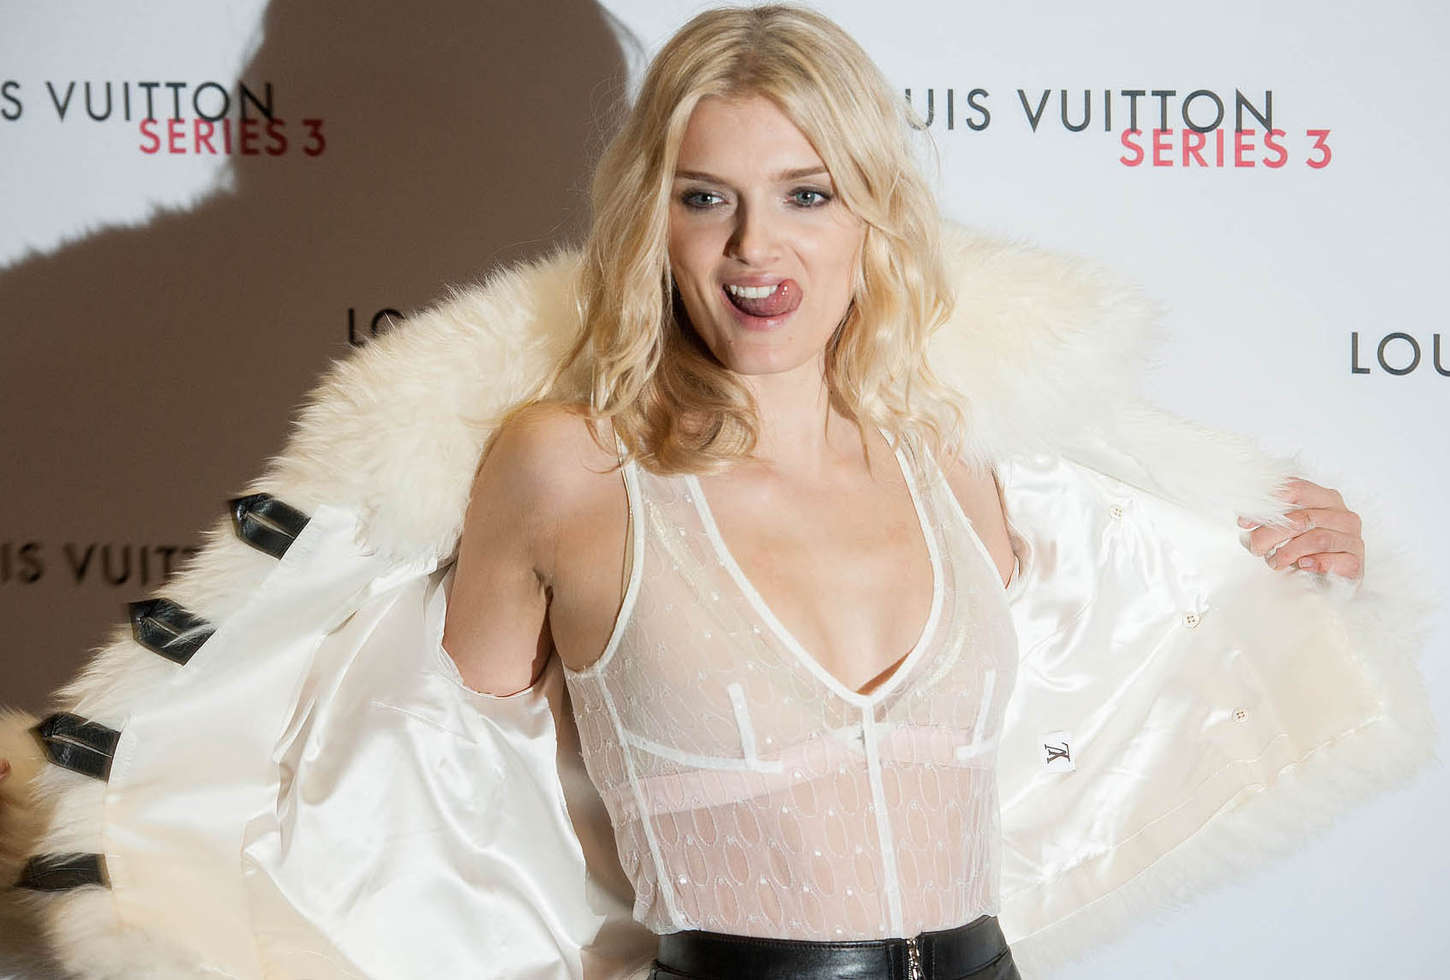 Lily Donaldson Louis Vuitton Series Gala at LFW in London